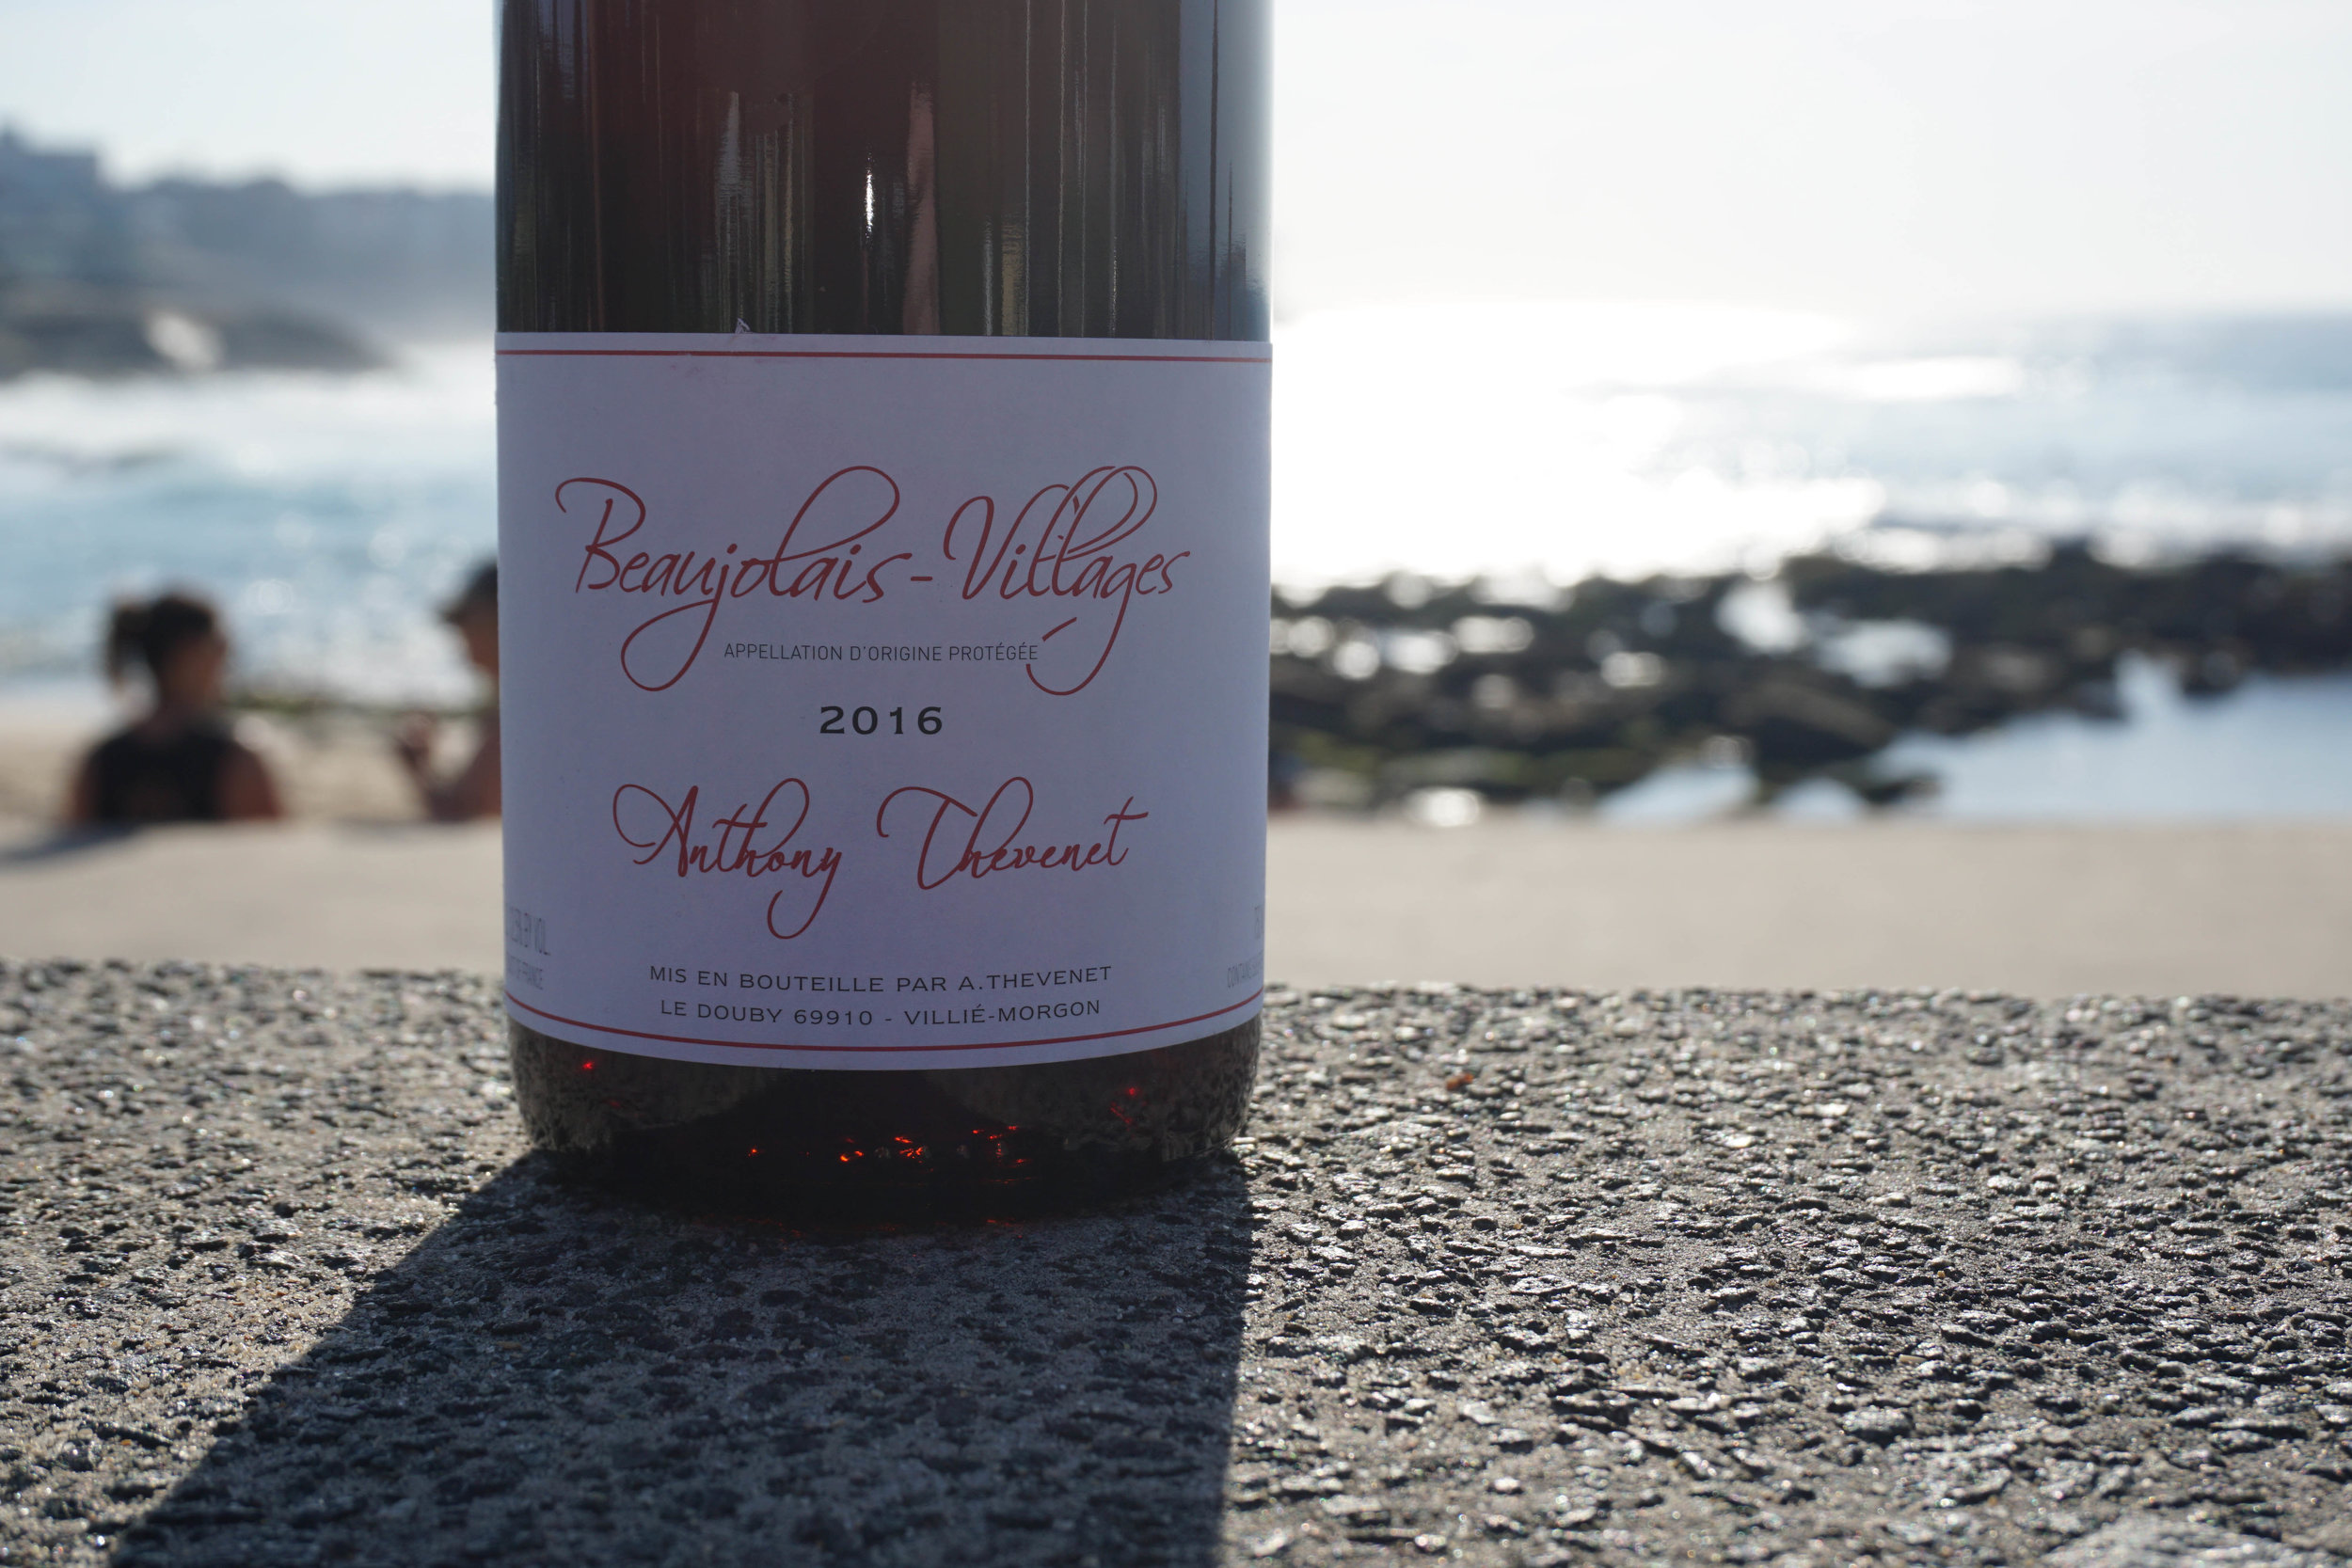 2016 Anthony Thévenet Beaujolais Villages Vine age;50 - 78 years old 30 hl/ha  Hand picked as bunches at an elevation of 230m on sandy soils with a top layer of gravel. To retain freshness and purity, a short carbonic maceration in concrete vats for 8 days, later followed by full natural malolactic fermentation in concrete also.  The majority remained in concrete for maturation on lees whilst a third was sent to old 600L demi-muids for 3 months.  The resulting wine was then blended and sent to bottle without fining, filtration and finished with less that 10mg/l of SO2 added.